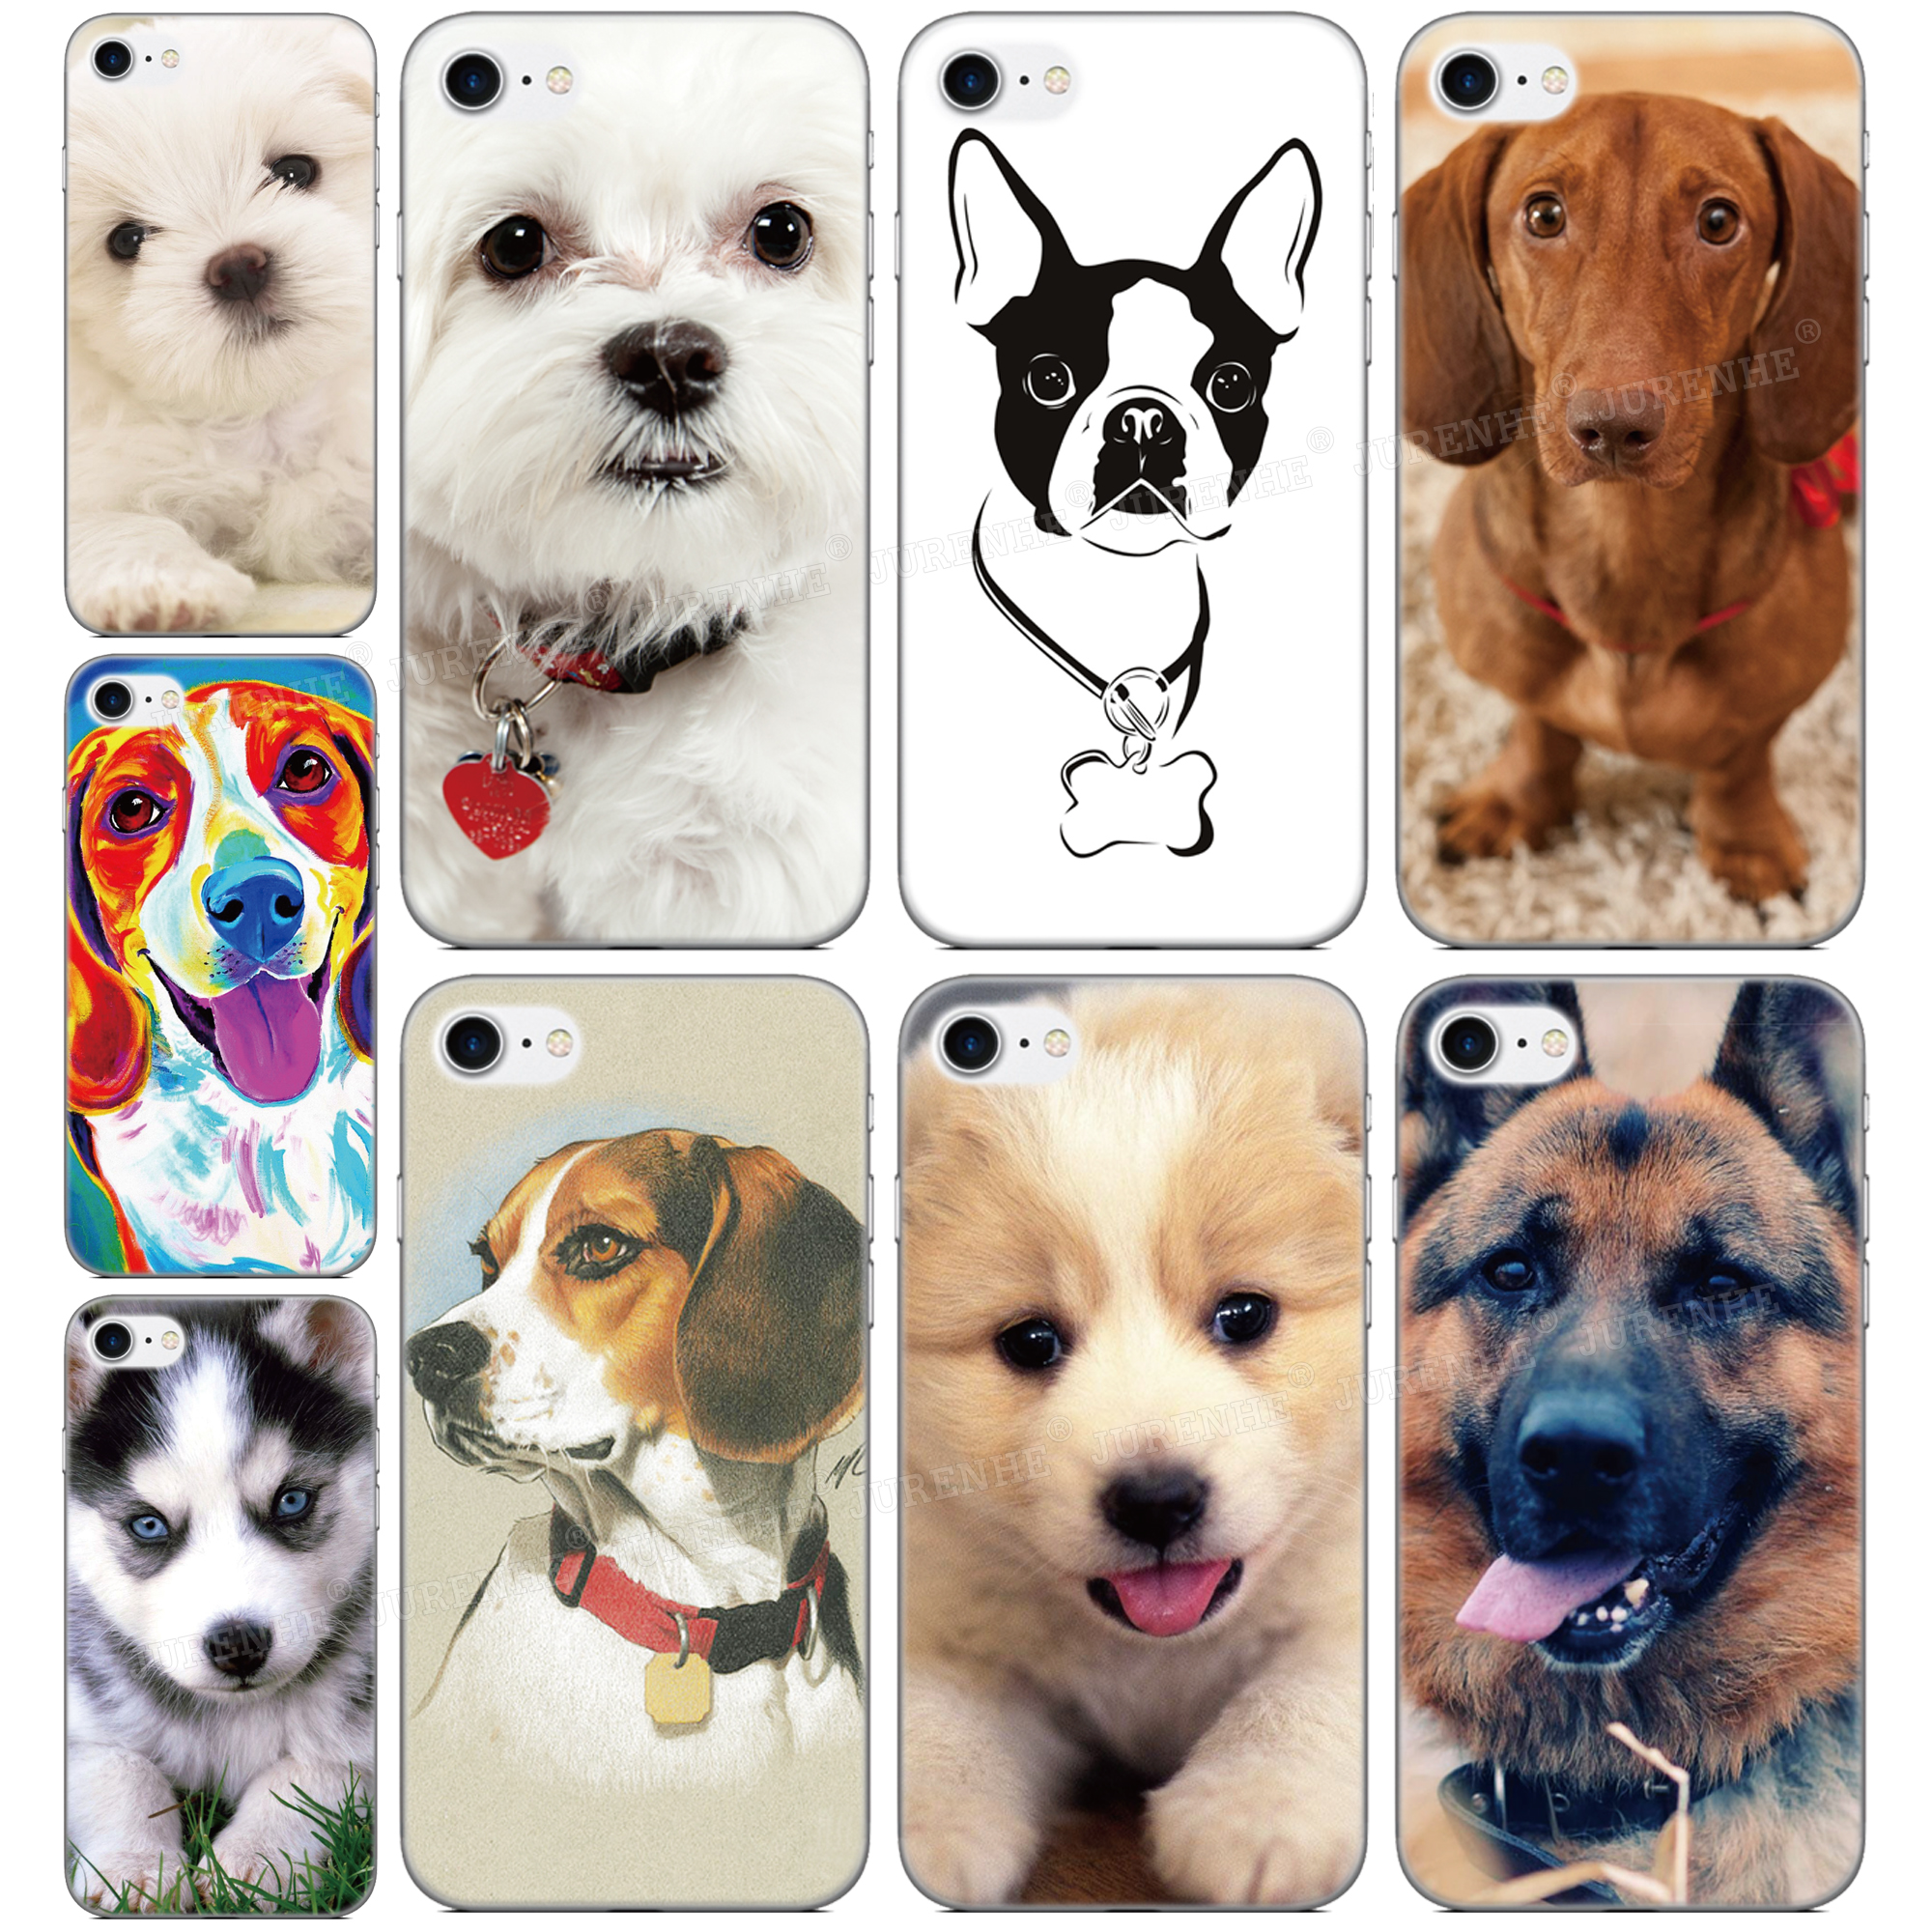 Soft Silicone Pet dog <font><b>Phone</b></font> Case For <font><b>OPPO</b></font> Find X2 Pro A9 A8 A5 A31 2020 A91 AX5S <font><b>Realme</b></font> 5 6 X50 Reno A <font><b>3</b></font> Pro A52 A72 Back Cover image